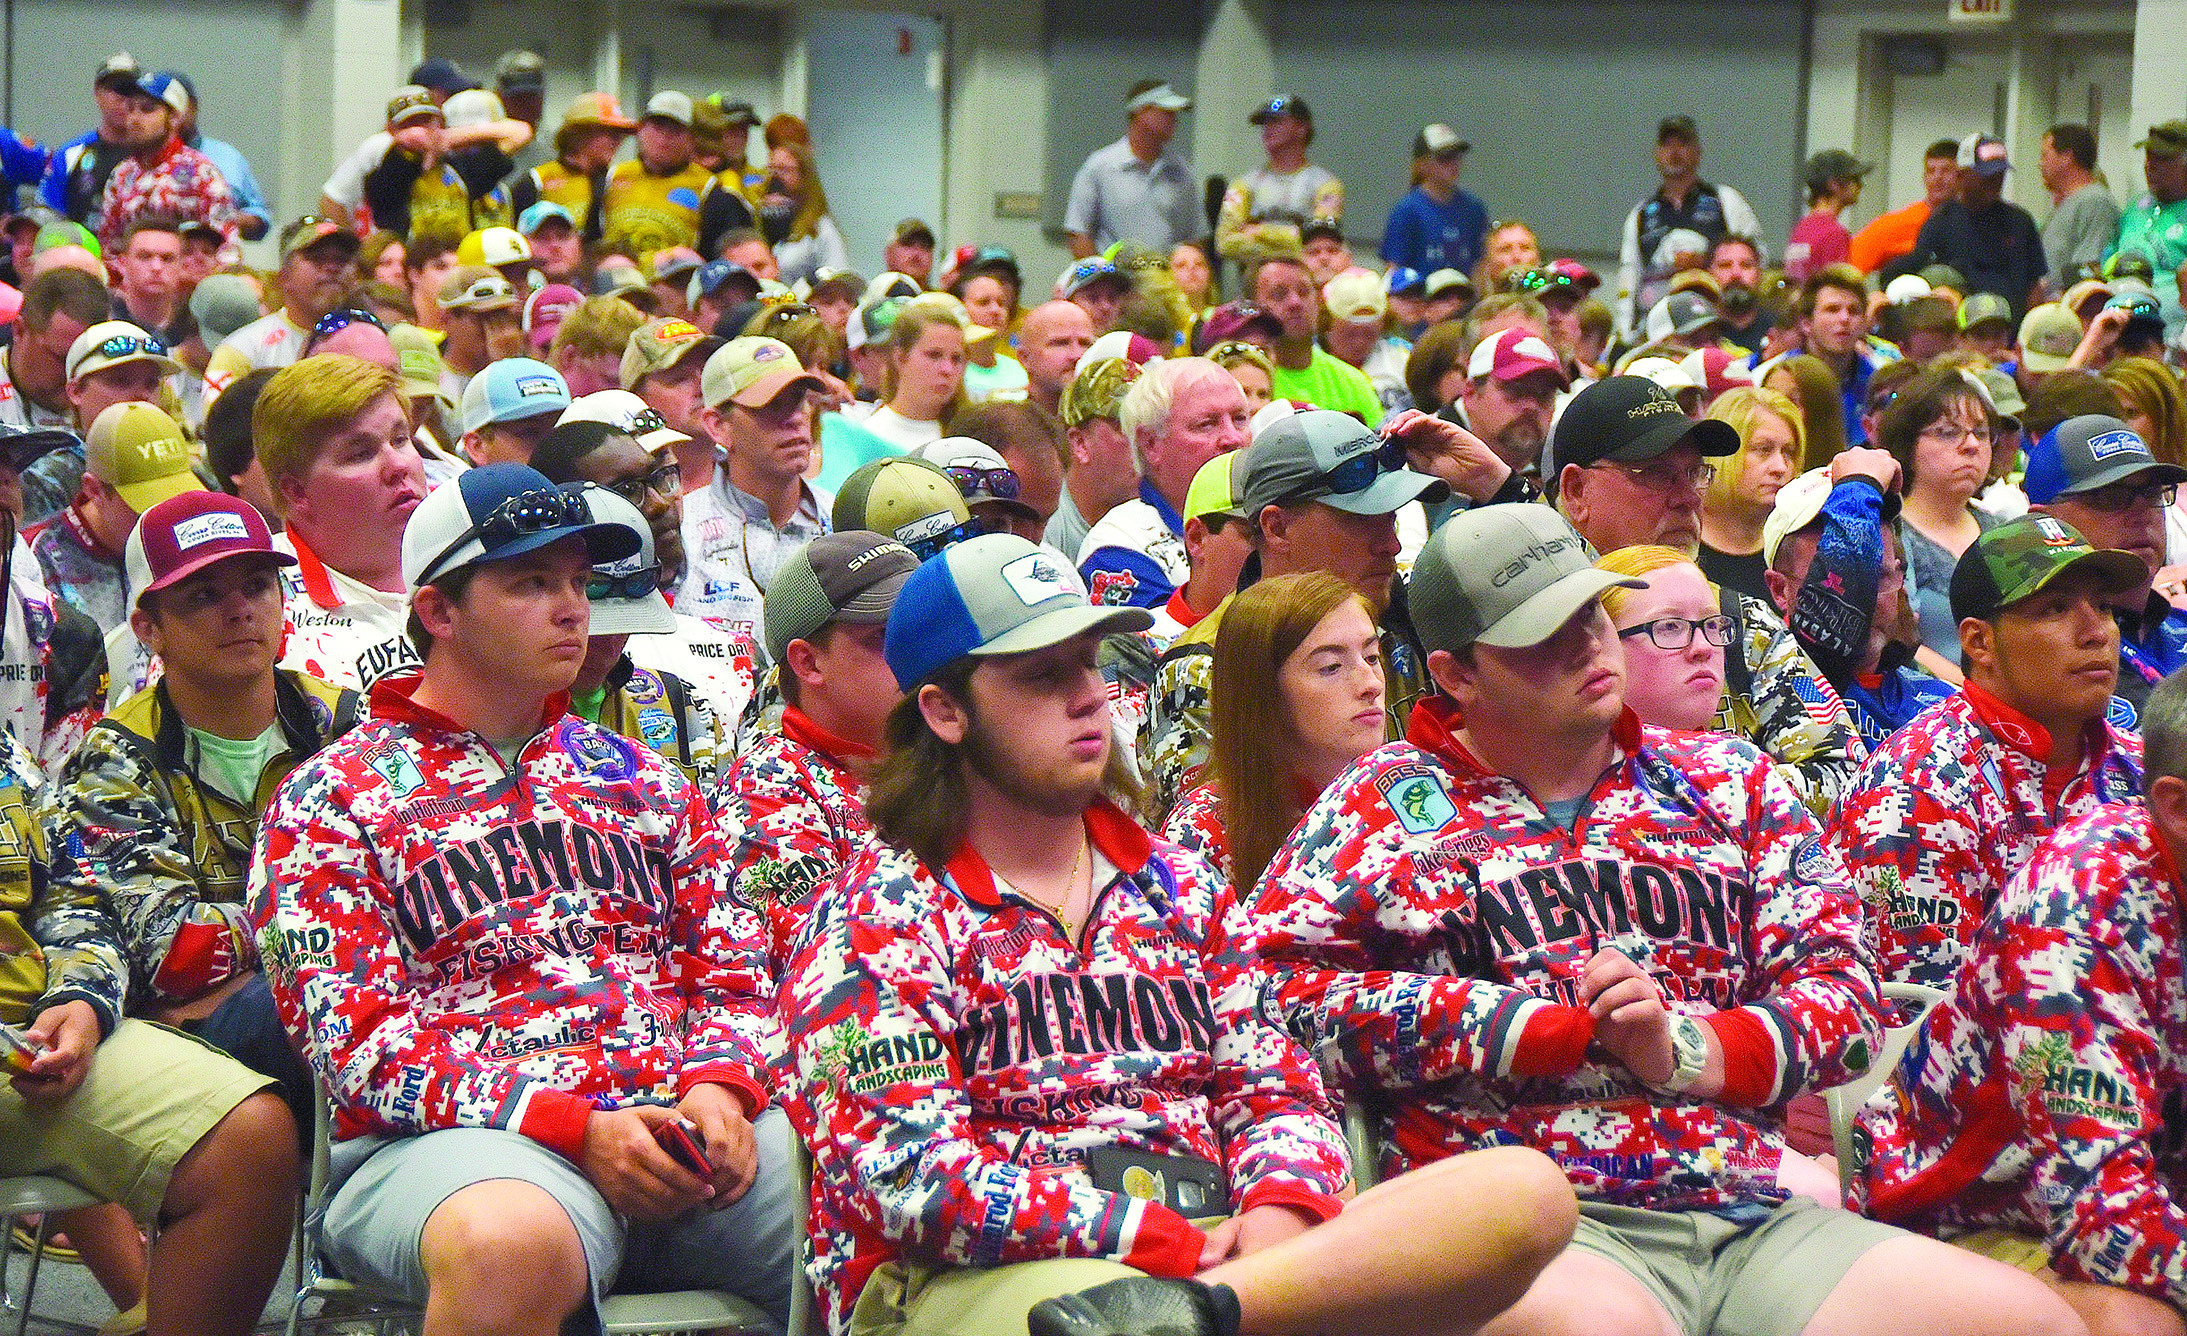 More than 40 high school fishing teams are in Jasper for the Alabama Student Angler Bass Fishing Association's state championship tournament on Lewis Smith Lake. The high school anglers held a briefing at the Jasper Civic Center Thursday night. The tournament kicked off early this morning.